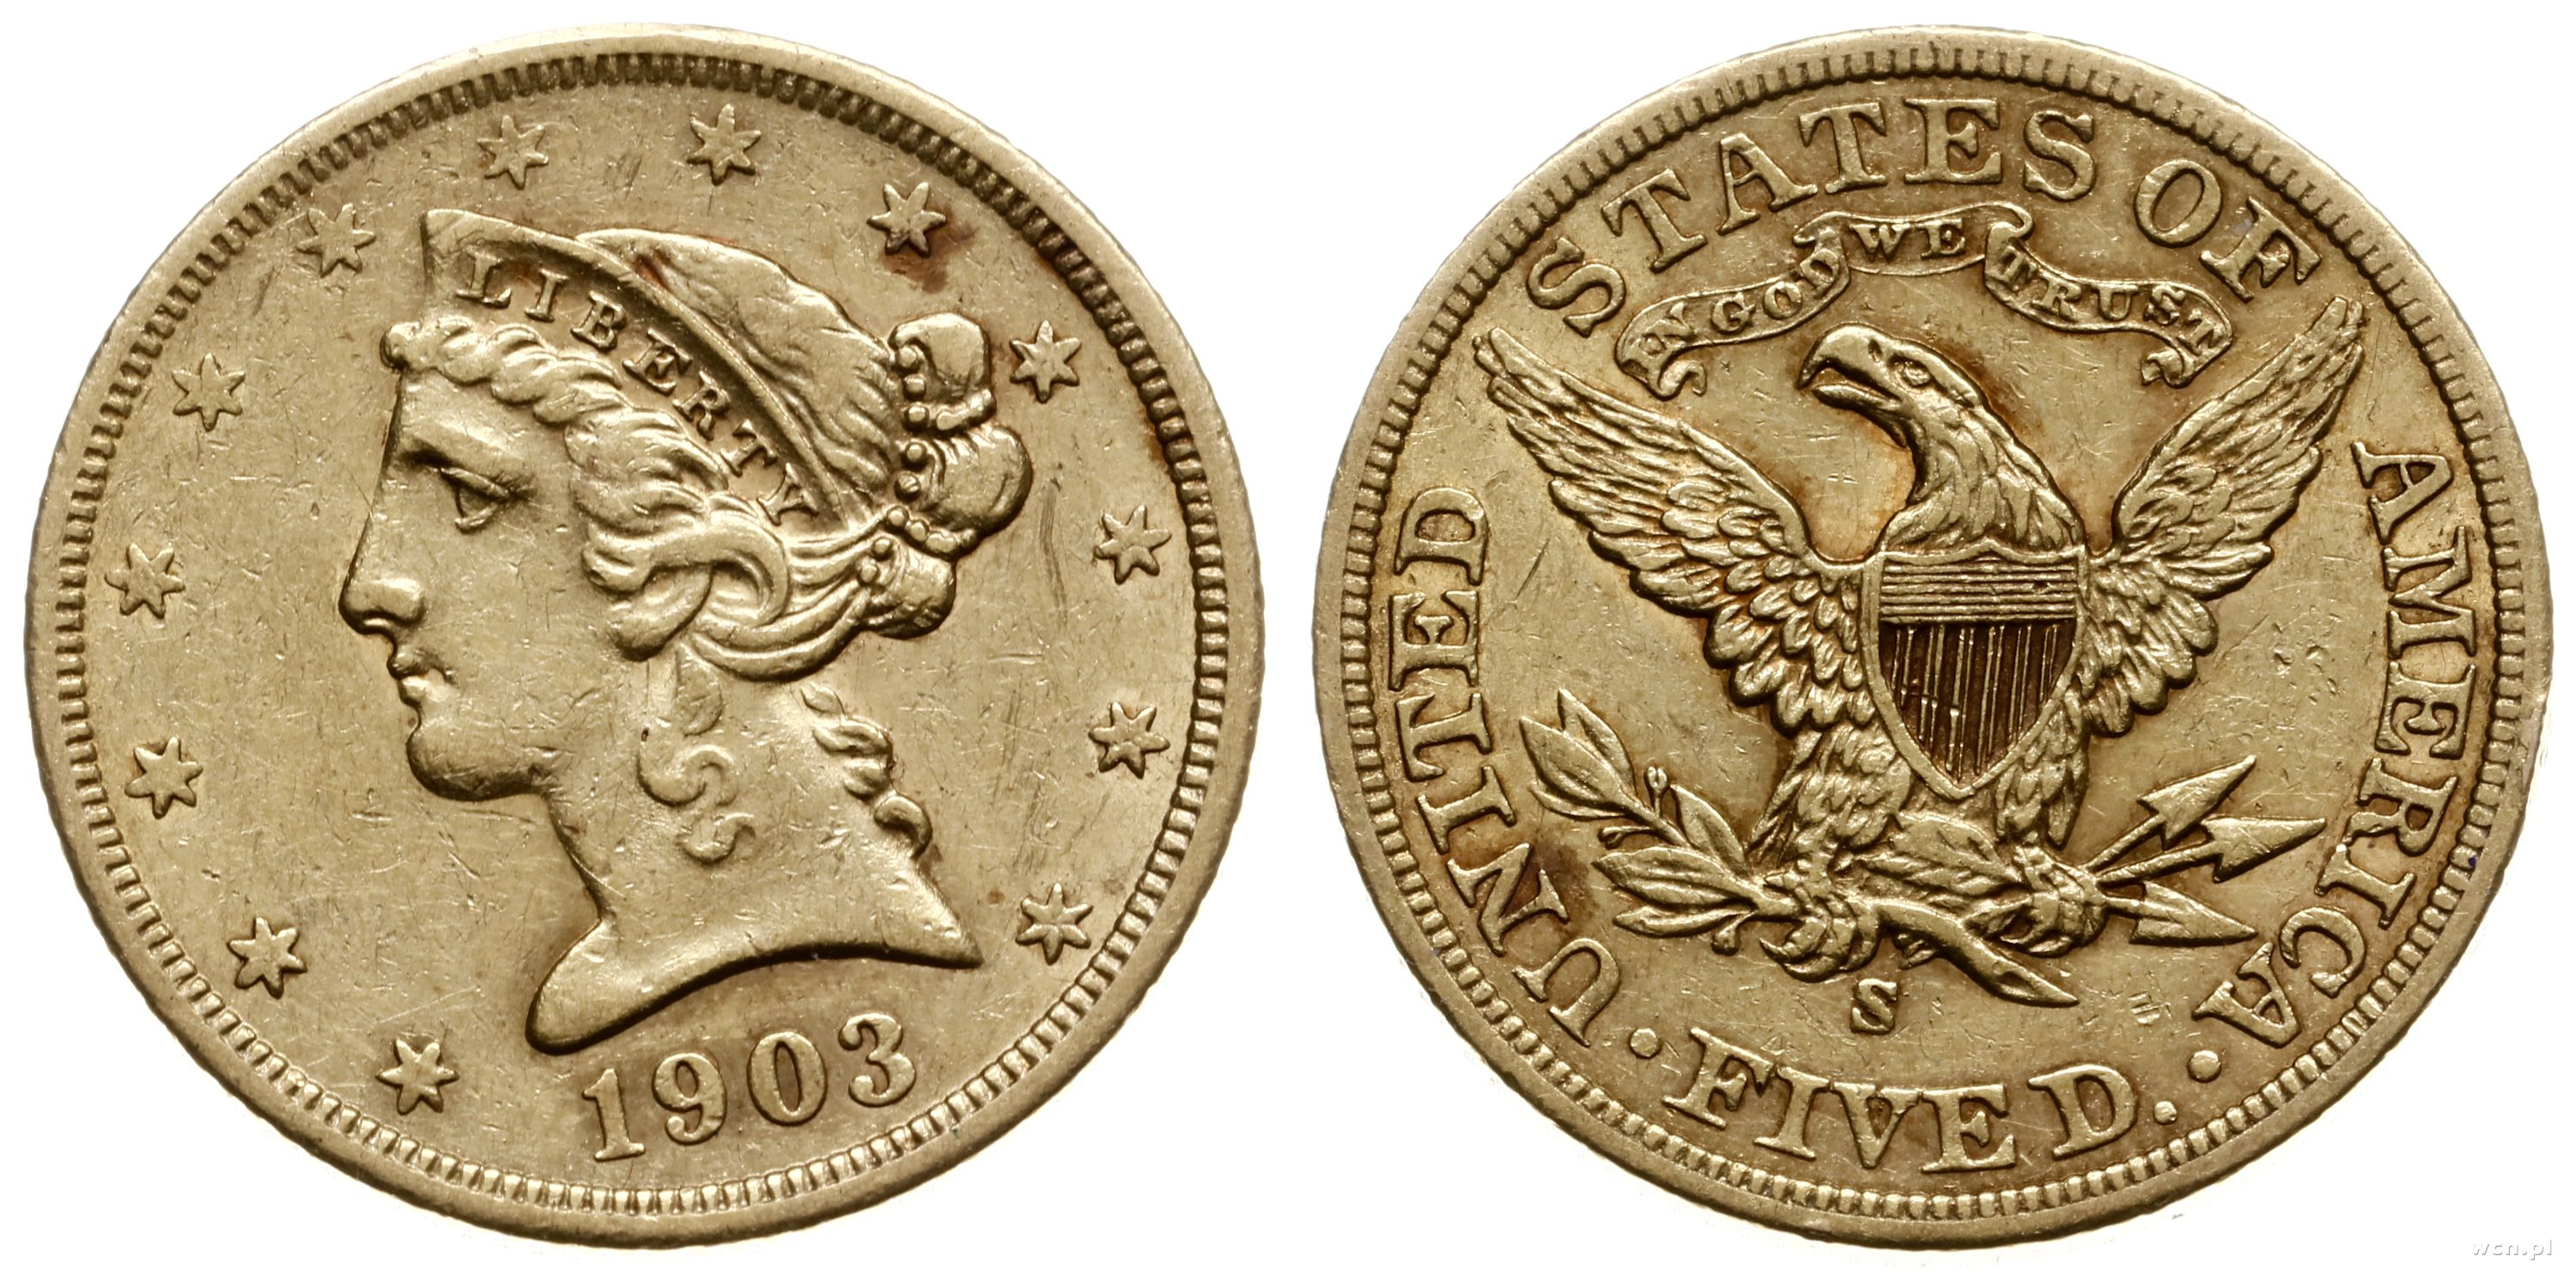 5 dolarów 1903 S, San Francisco, Liberty Head, z